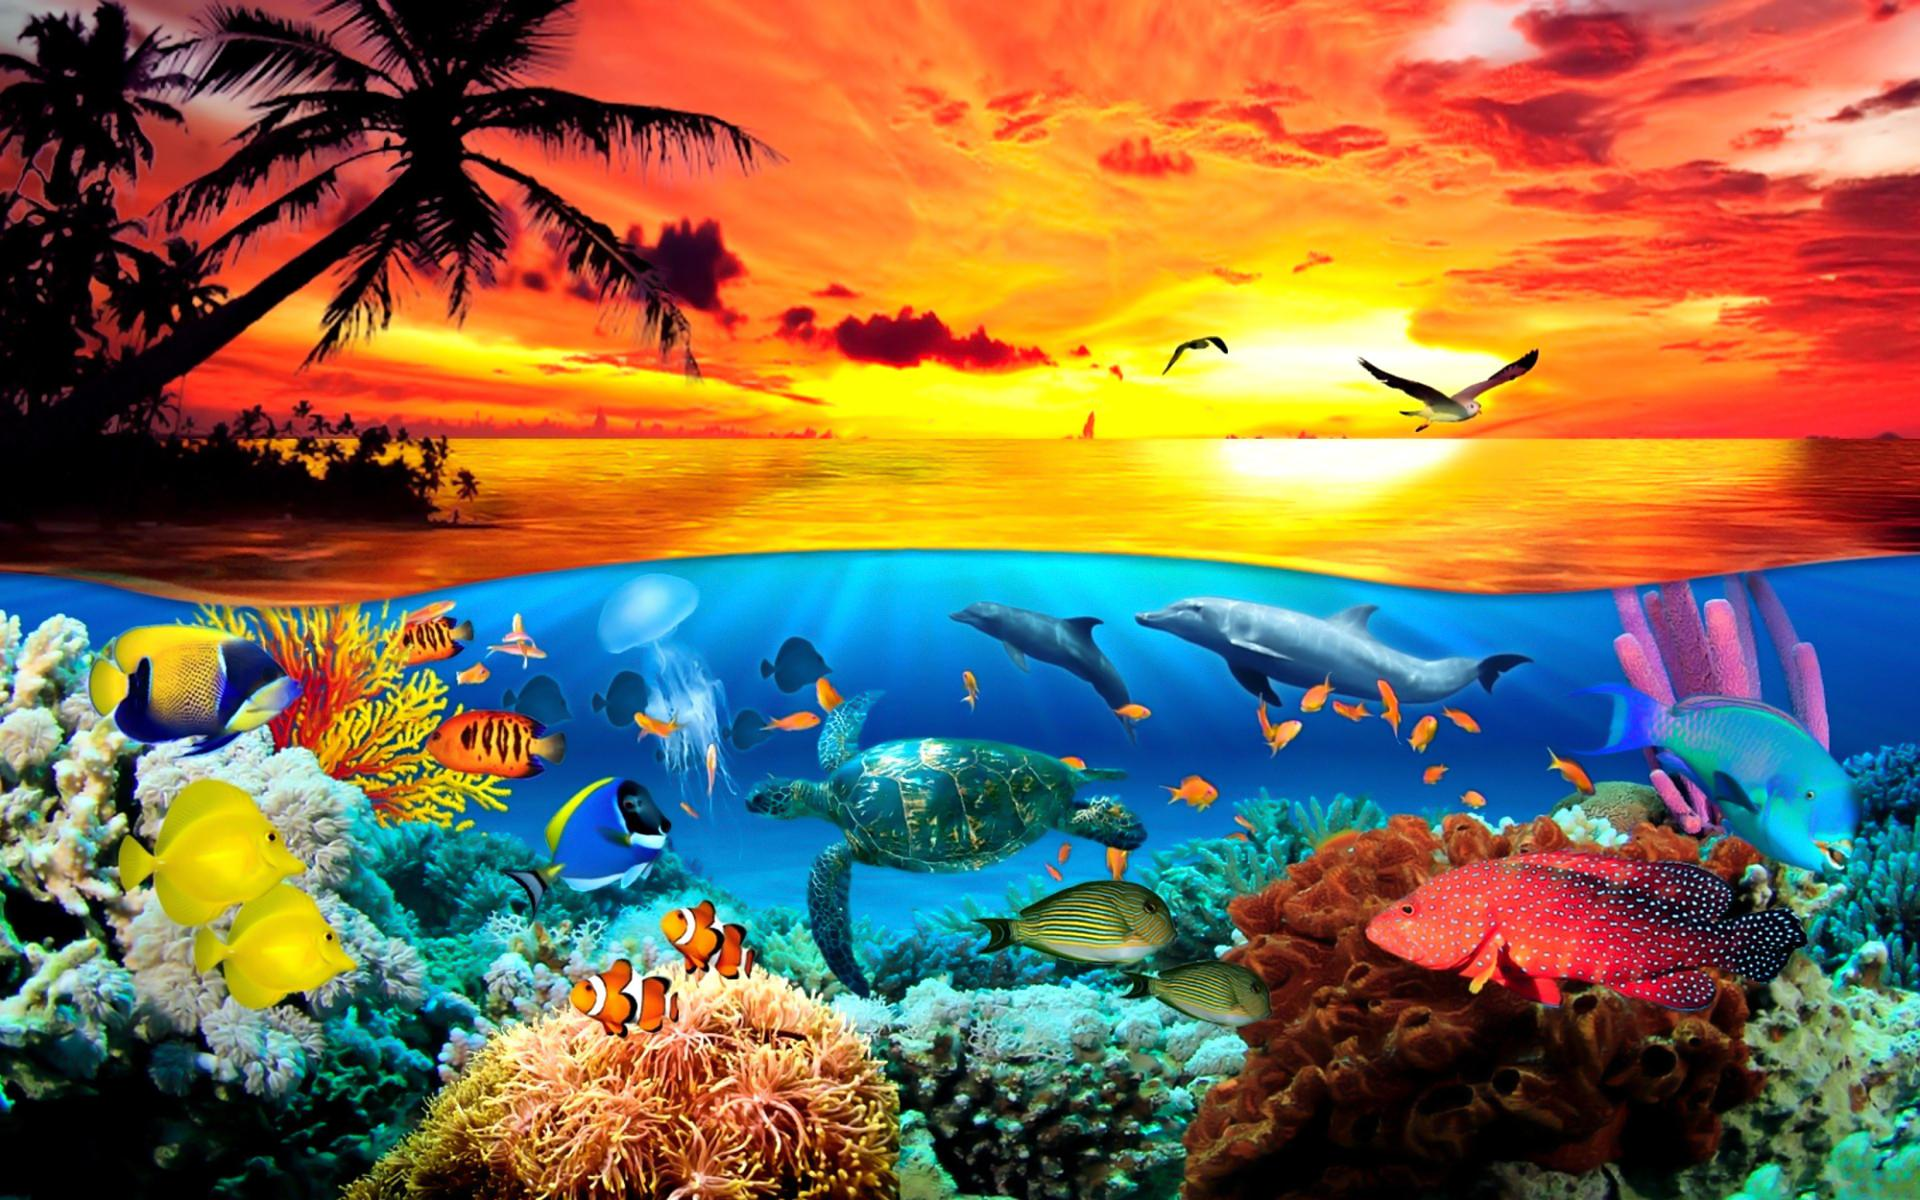 48 under the sea wallpaper on wallpapersafari - Ocean pictures for desktop background ...